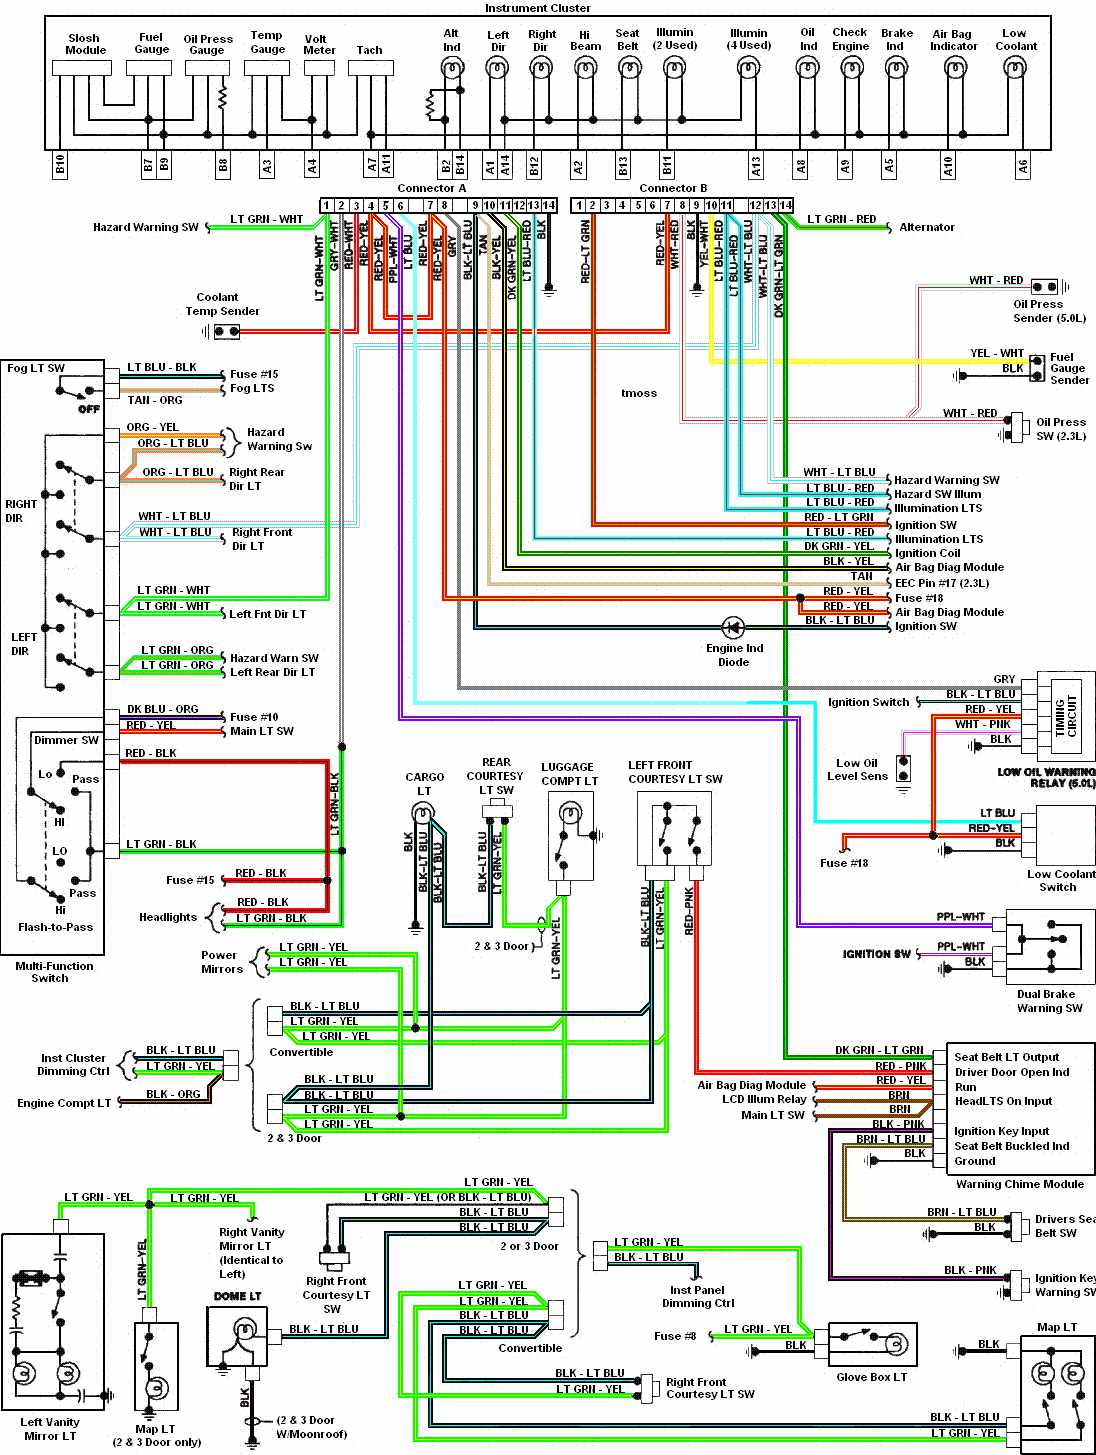 Fuel Gauge Wiring Diagram For F150